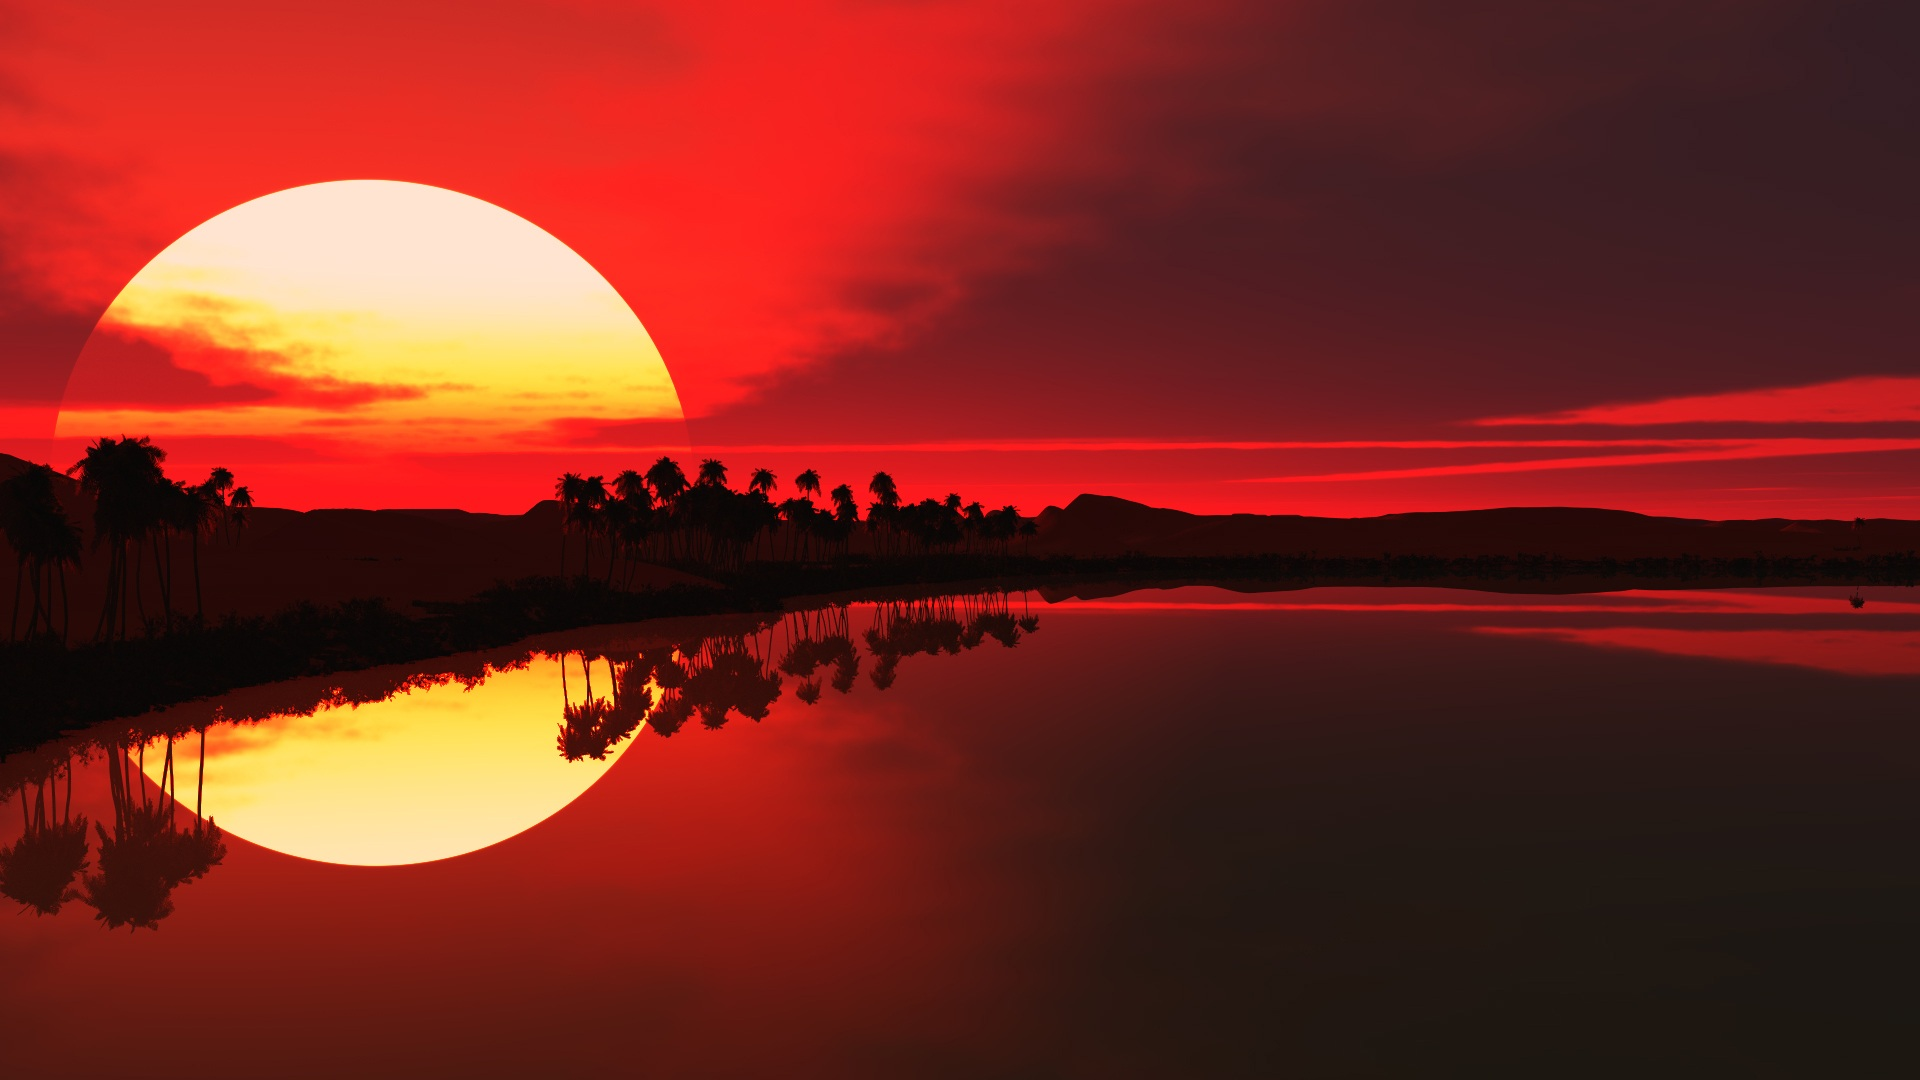 sunset wallpaper hd HD